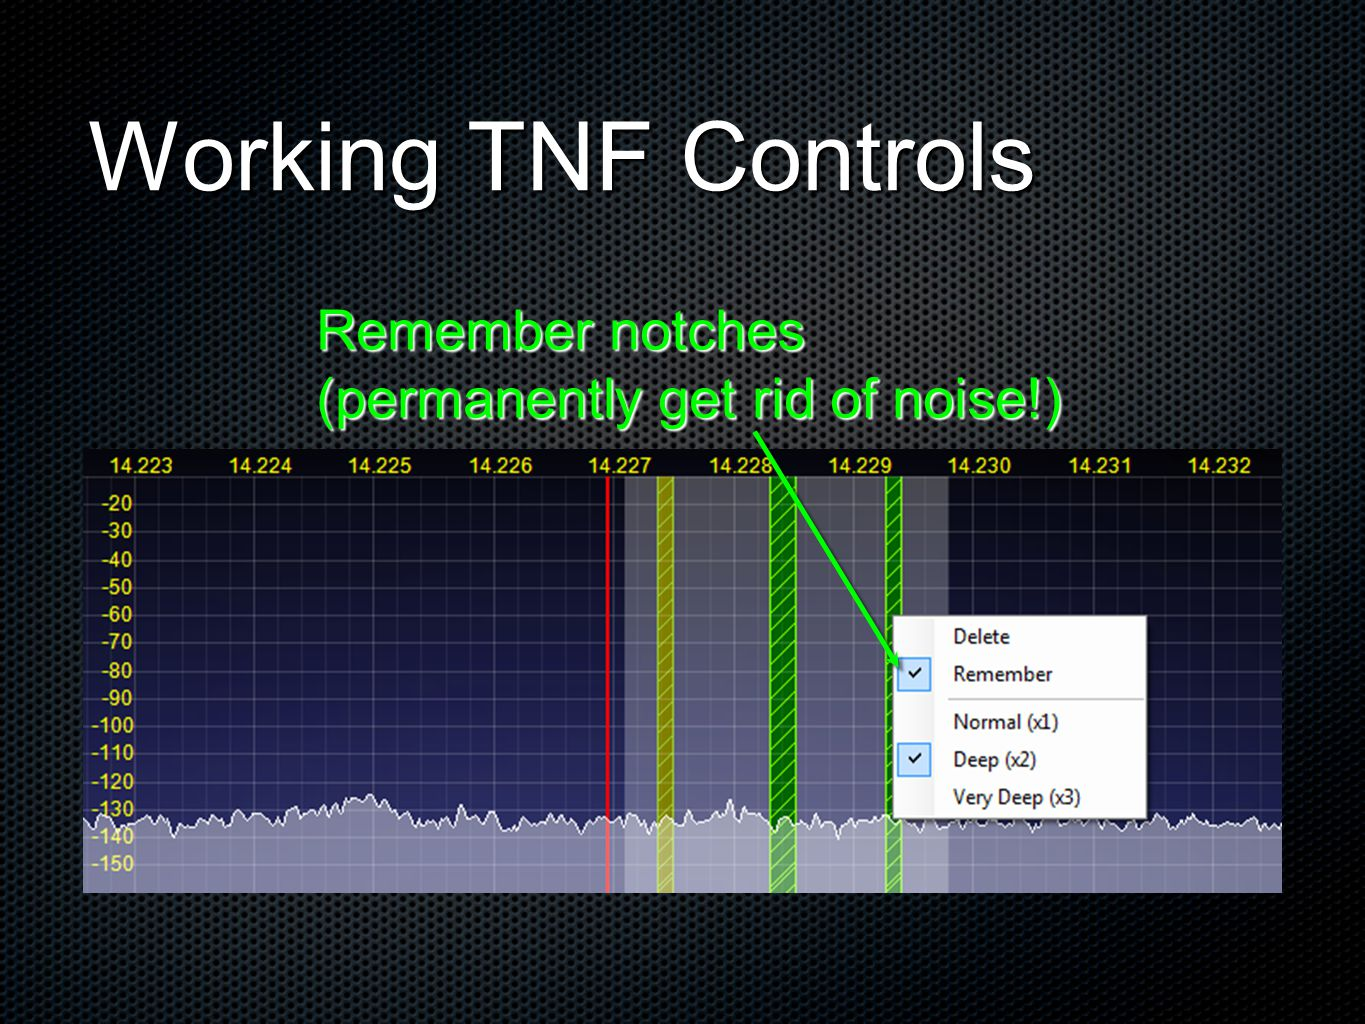 Working TNF Controls Remember notches (permanently get rid of noise!)